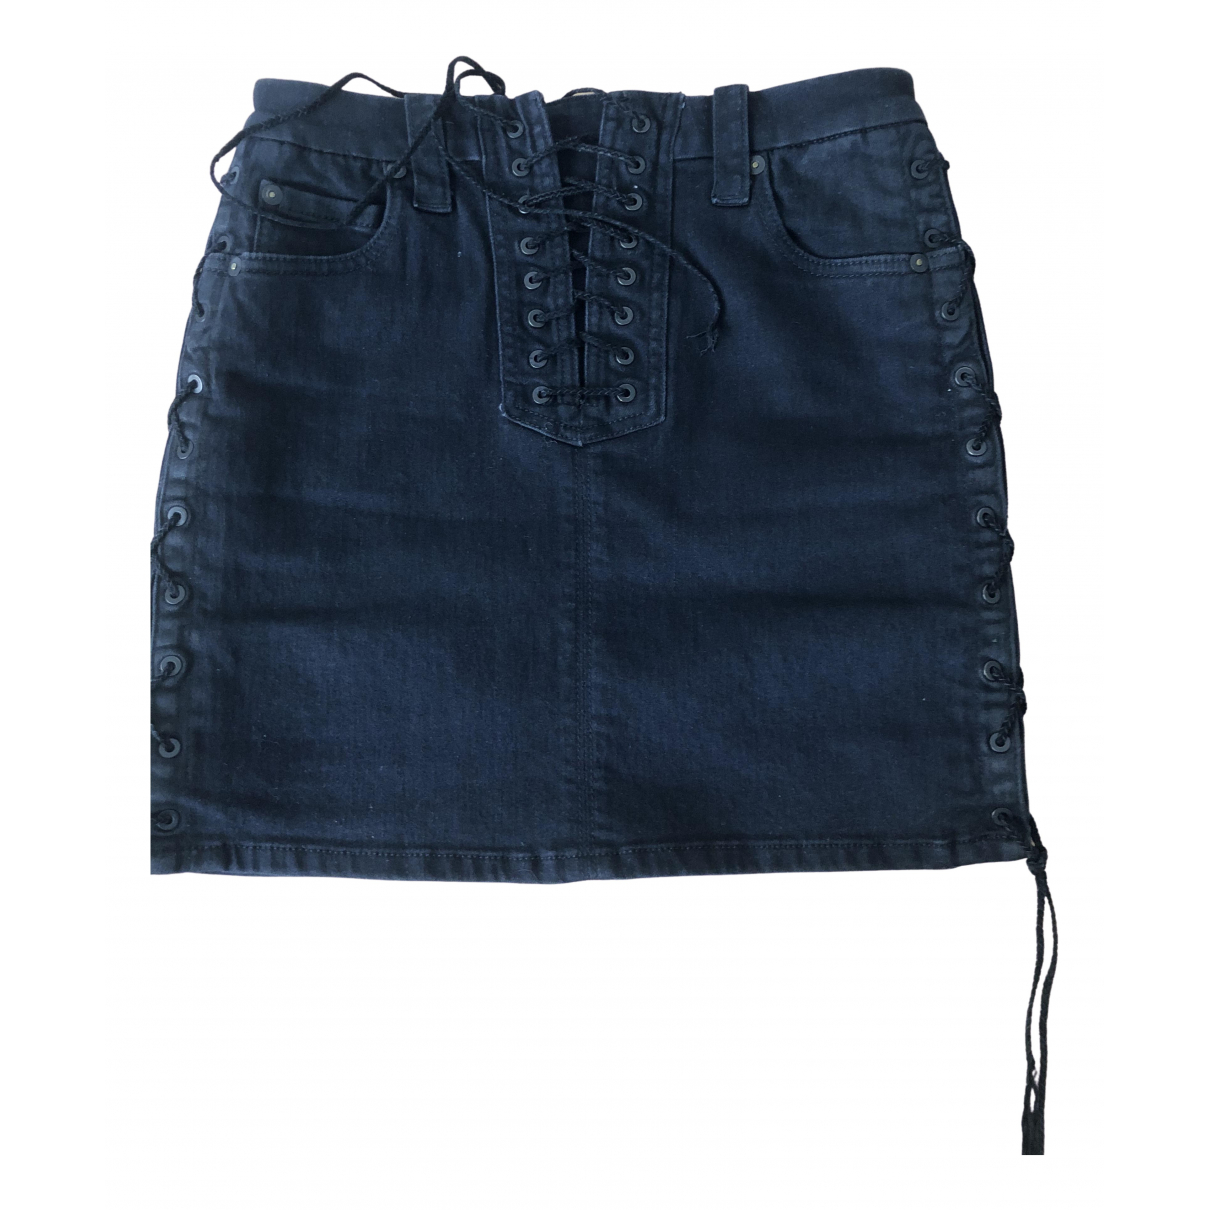 Unravel Project \N Black Denim - Jeans skirt for Women S International